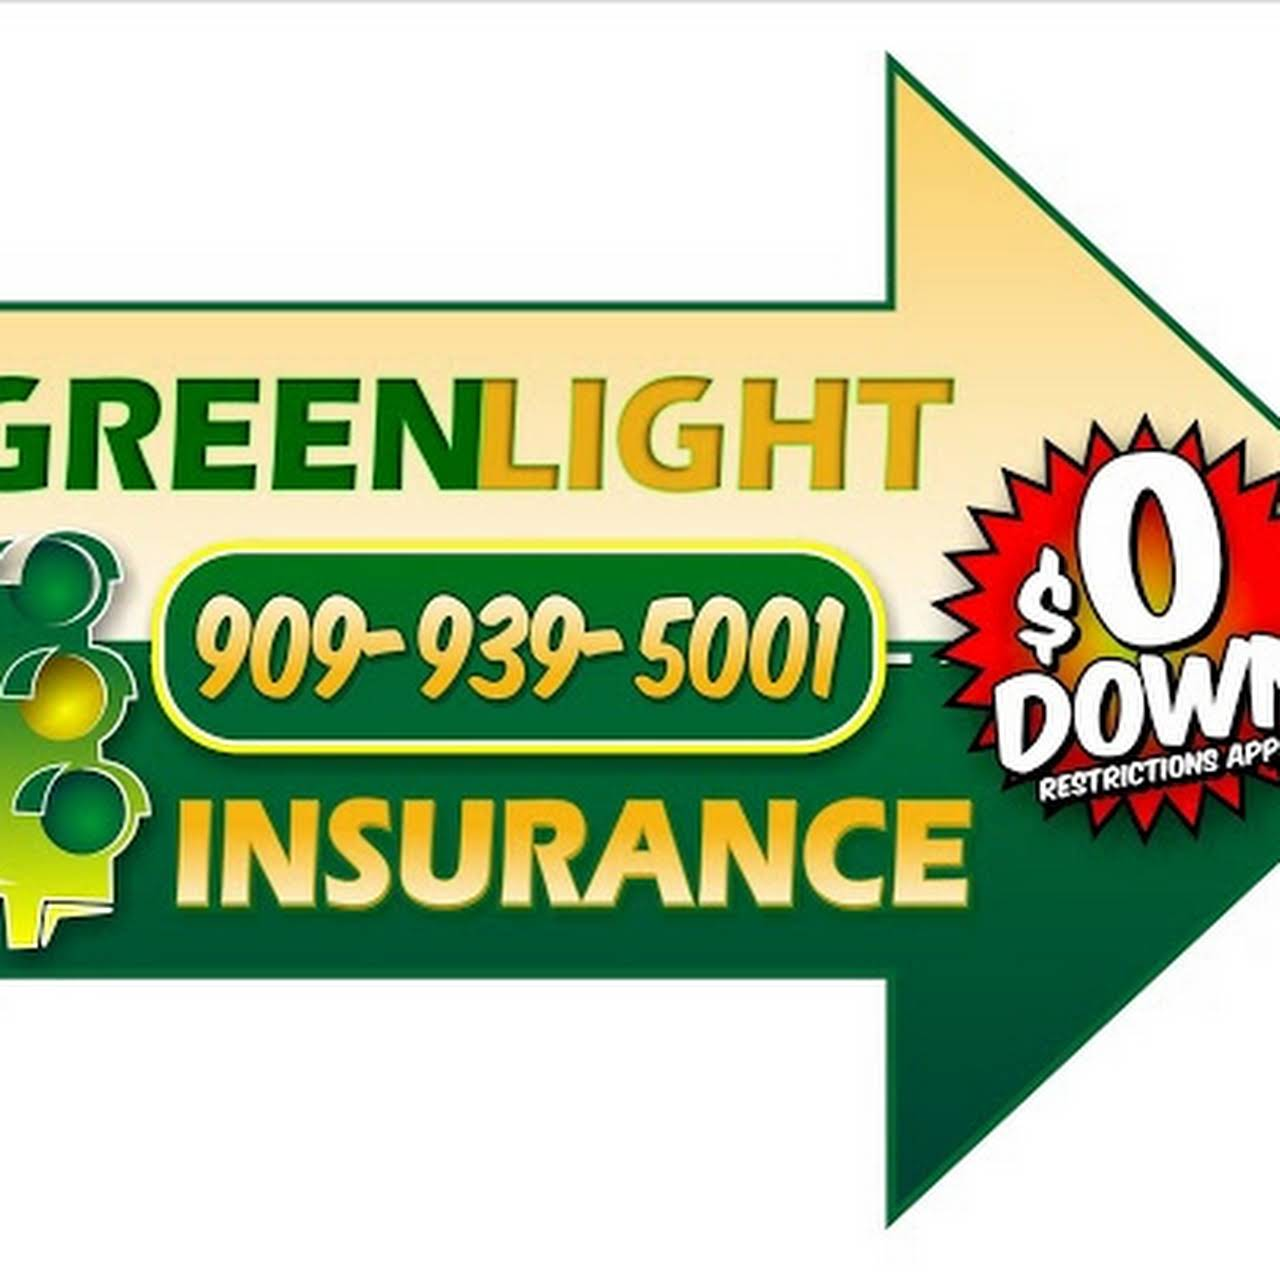 Green Light Auto >> Green Light Auto Insurance Services Inc Insurance Agency